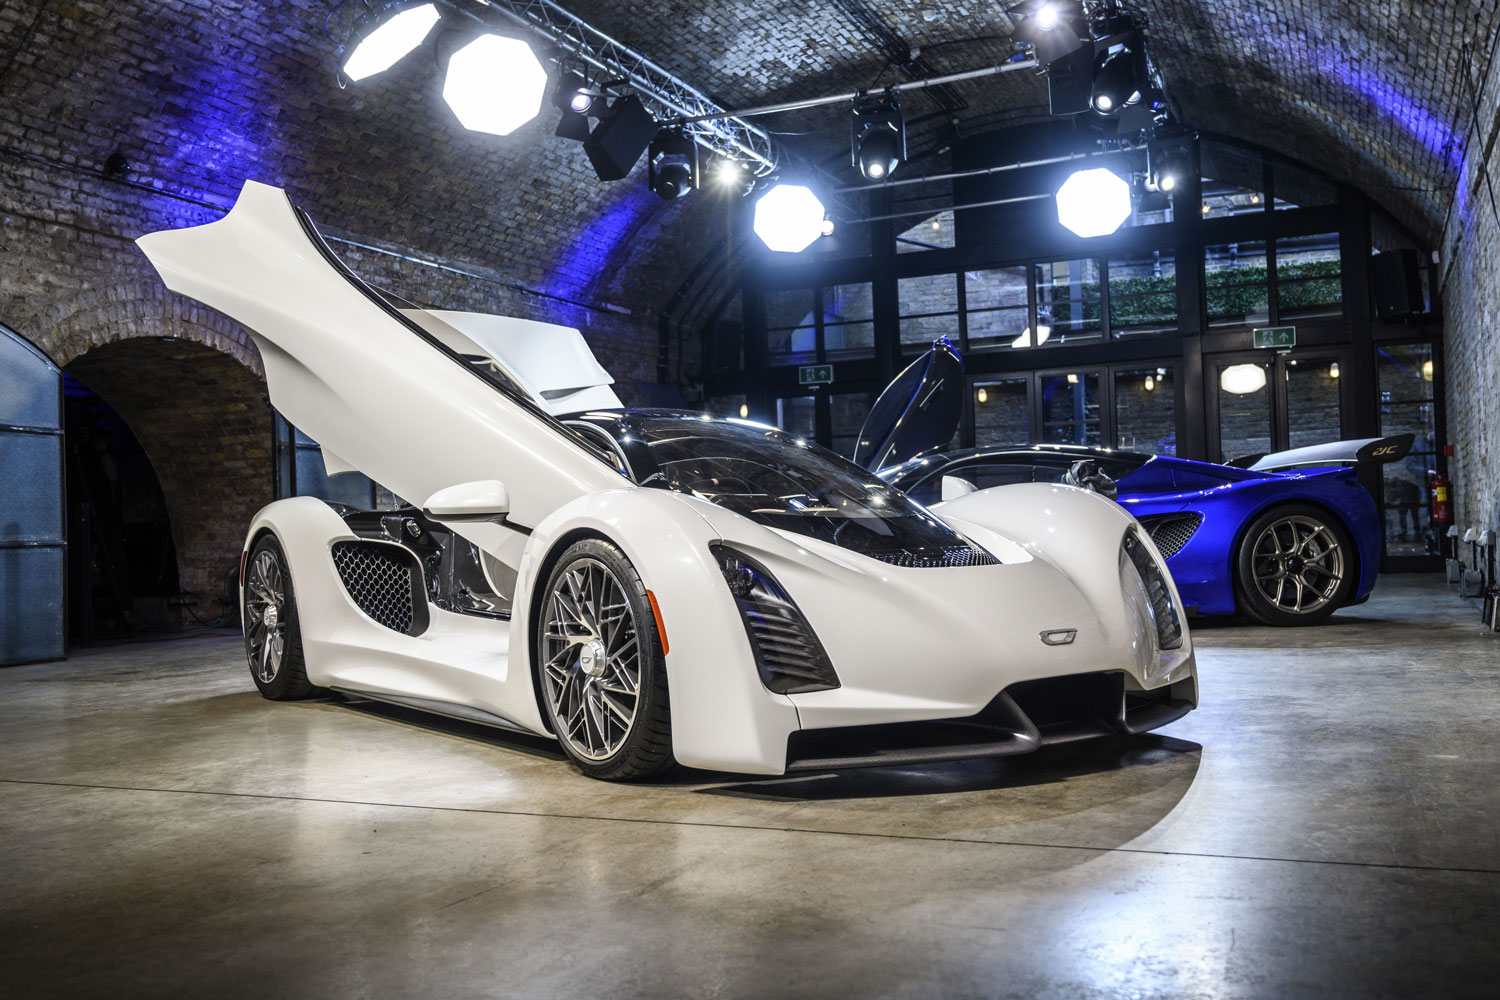 The Czinger 21C is a hybrid hypercar with a 1:1 power-to-weight ratio, and a whole lot more thumbnail